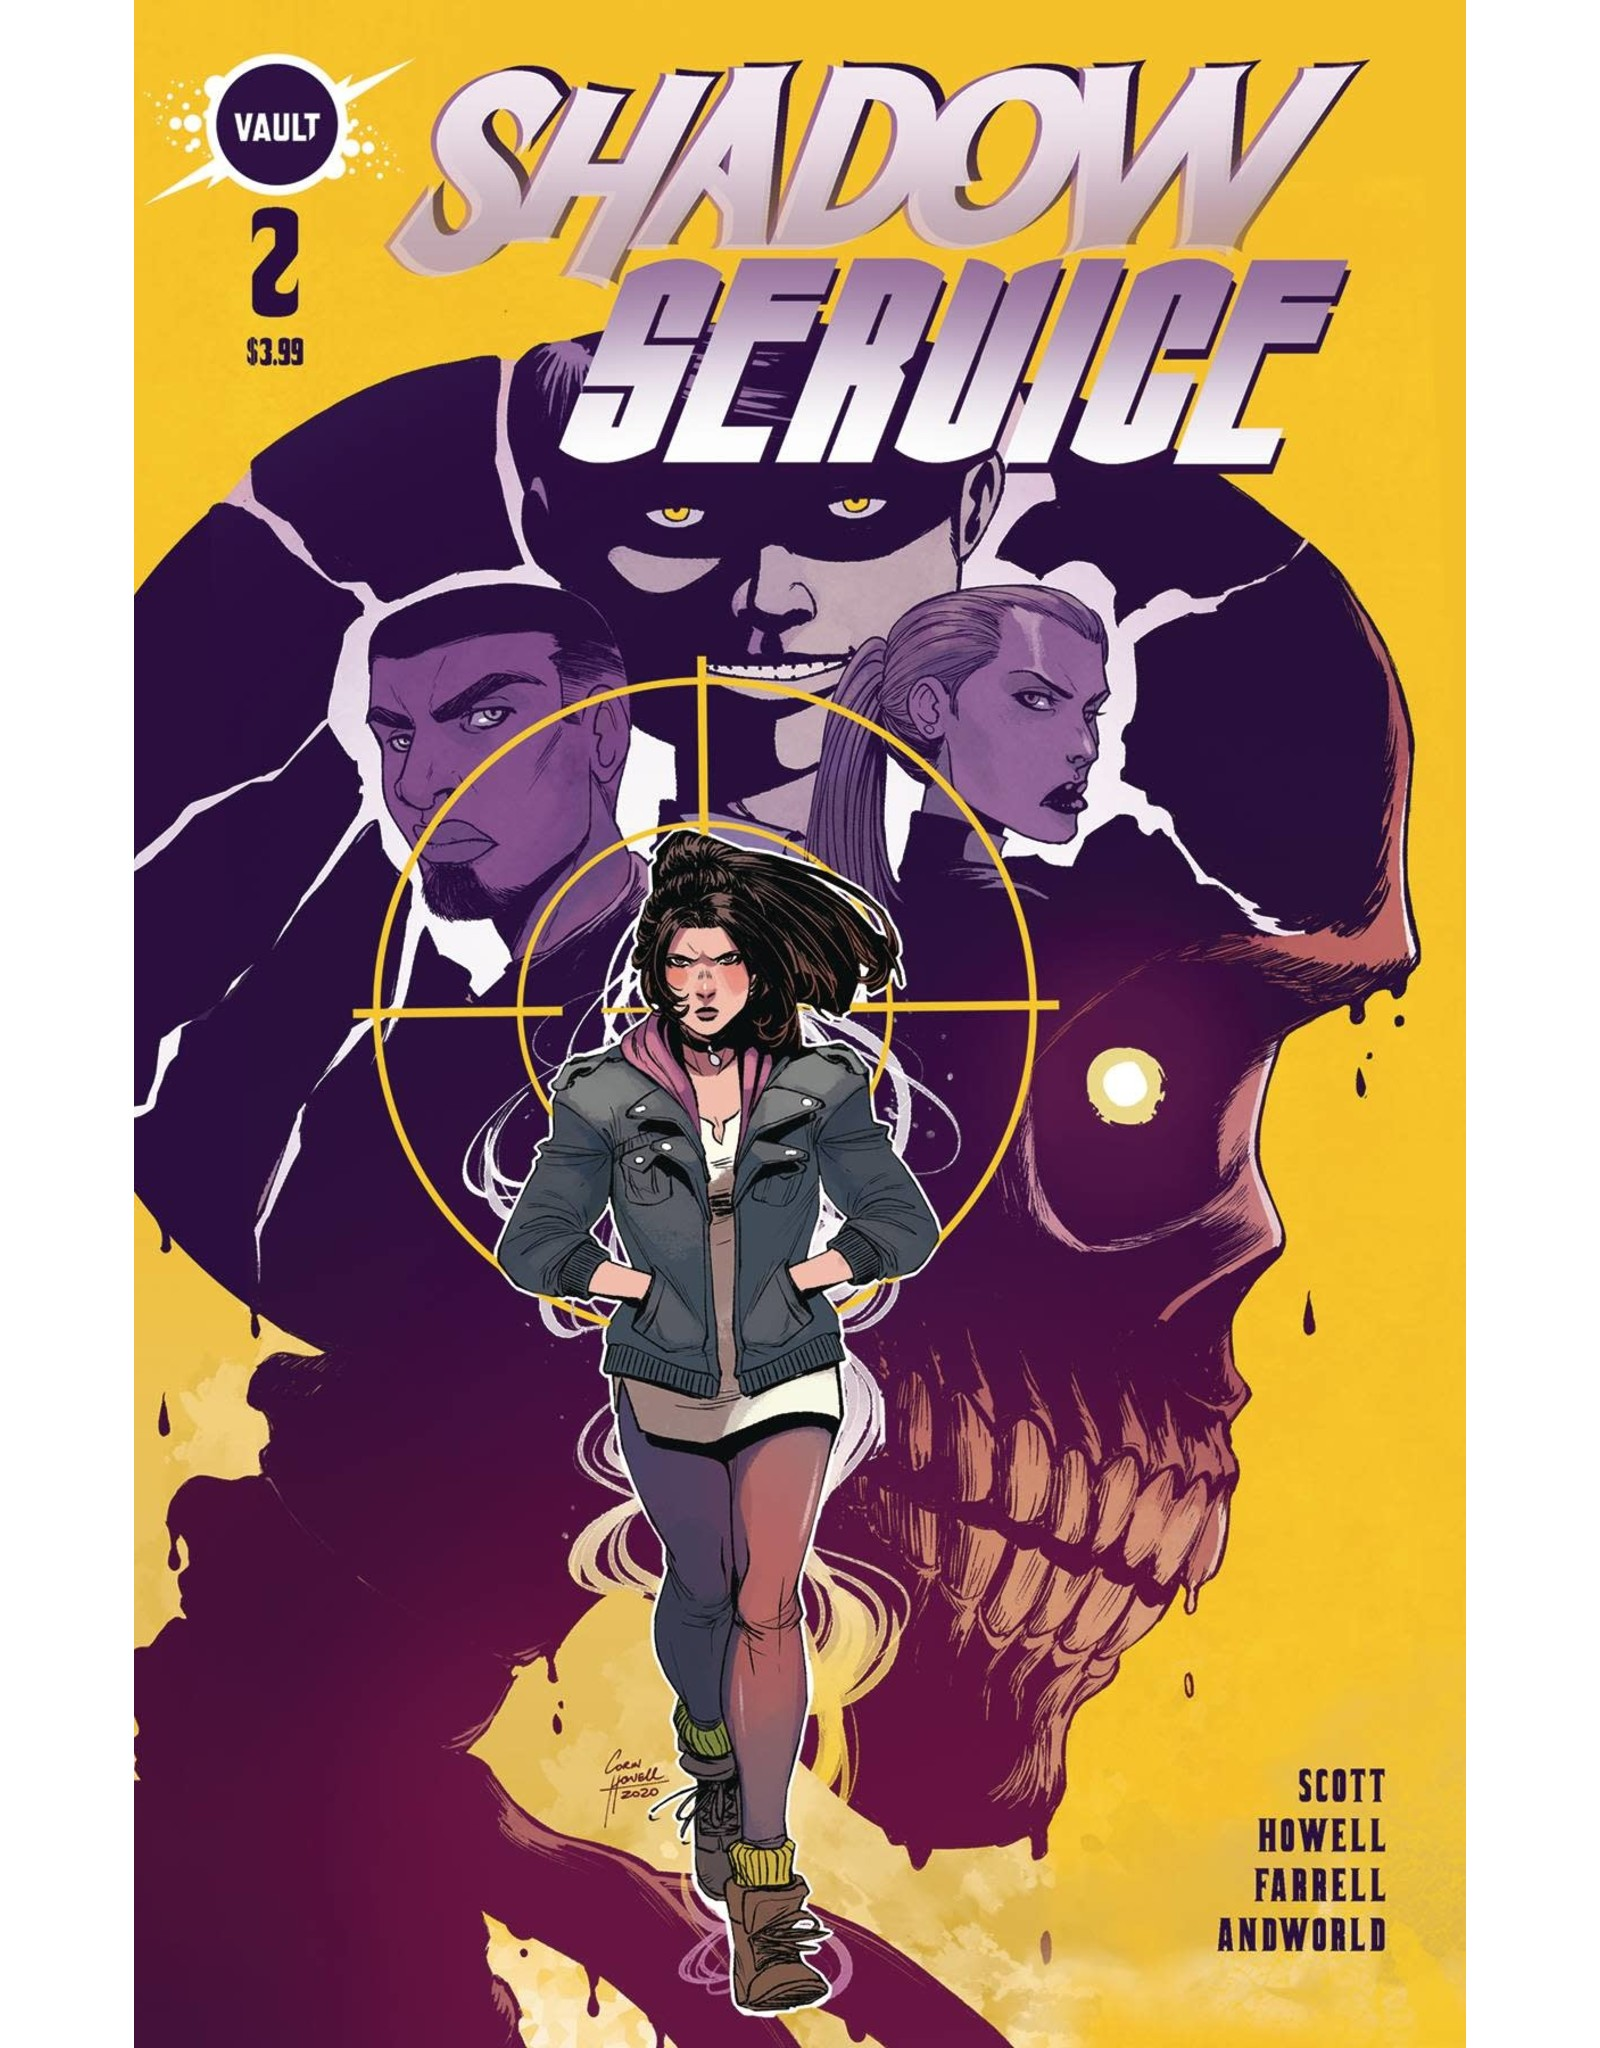 VAULT COMICS SHADOW SERVICE #2